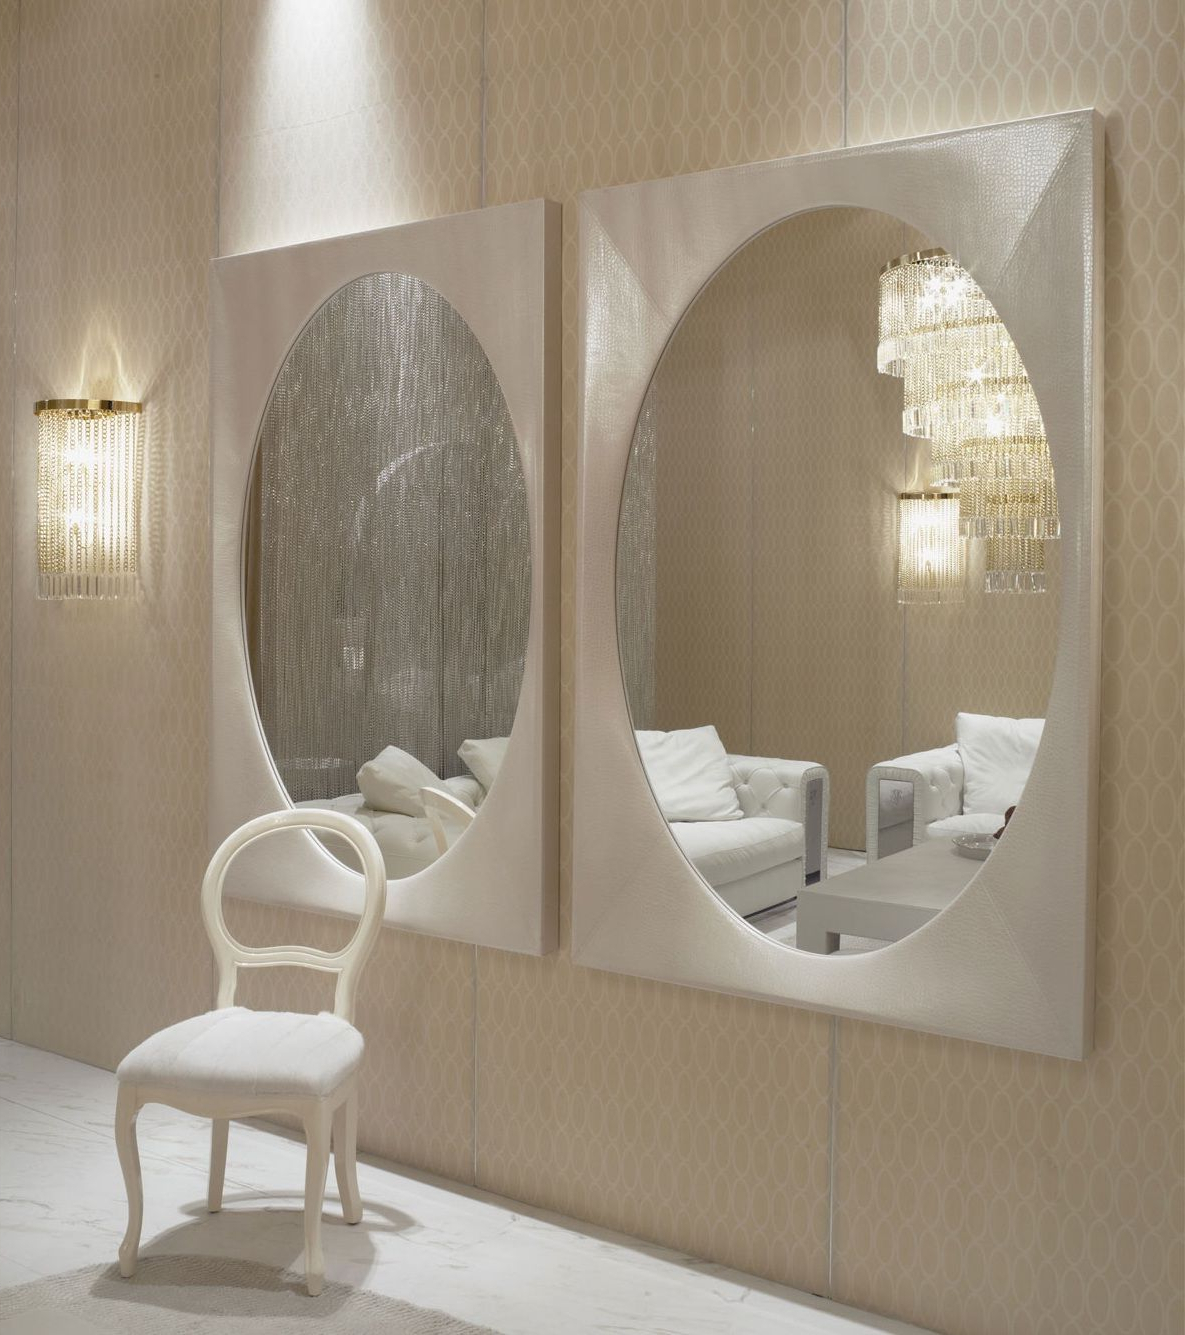 Instyle Decor Wall Mirrors, Luxury Designer Wall Mirrors, Modern Regarding Famous Knott Modern & Contemporary Accent Mirrors (View 19 of 20)